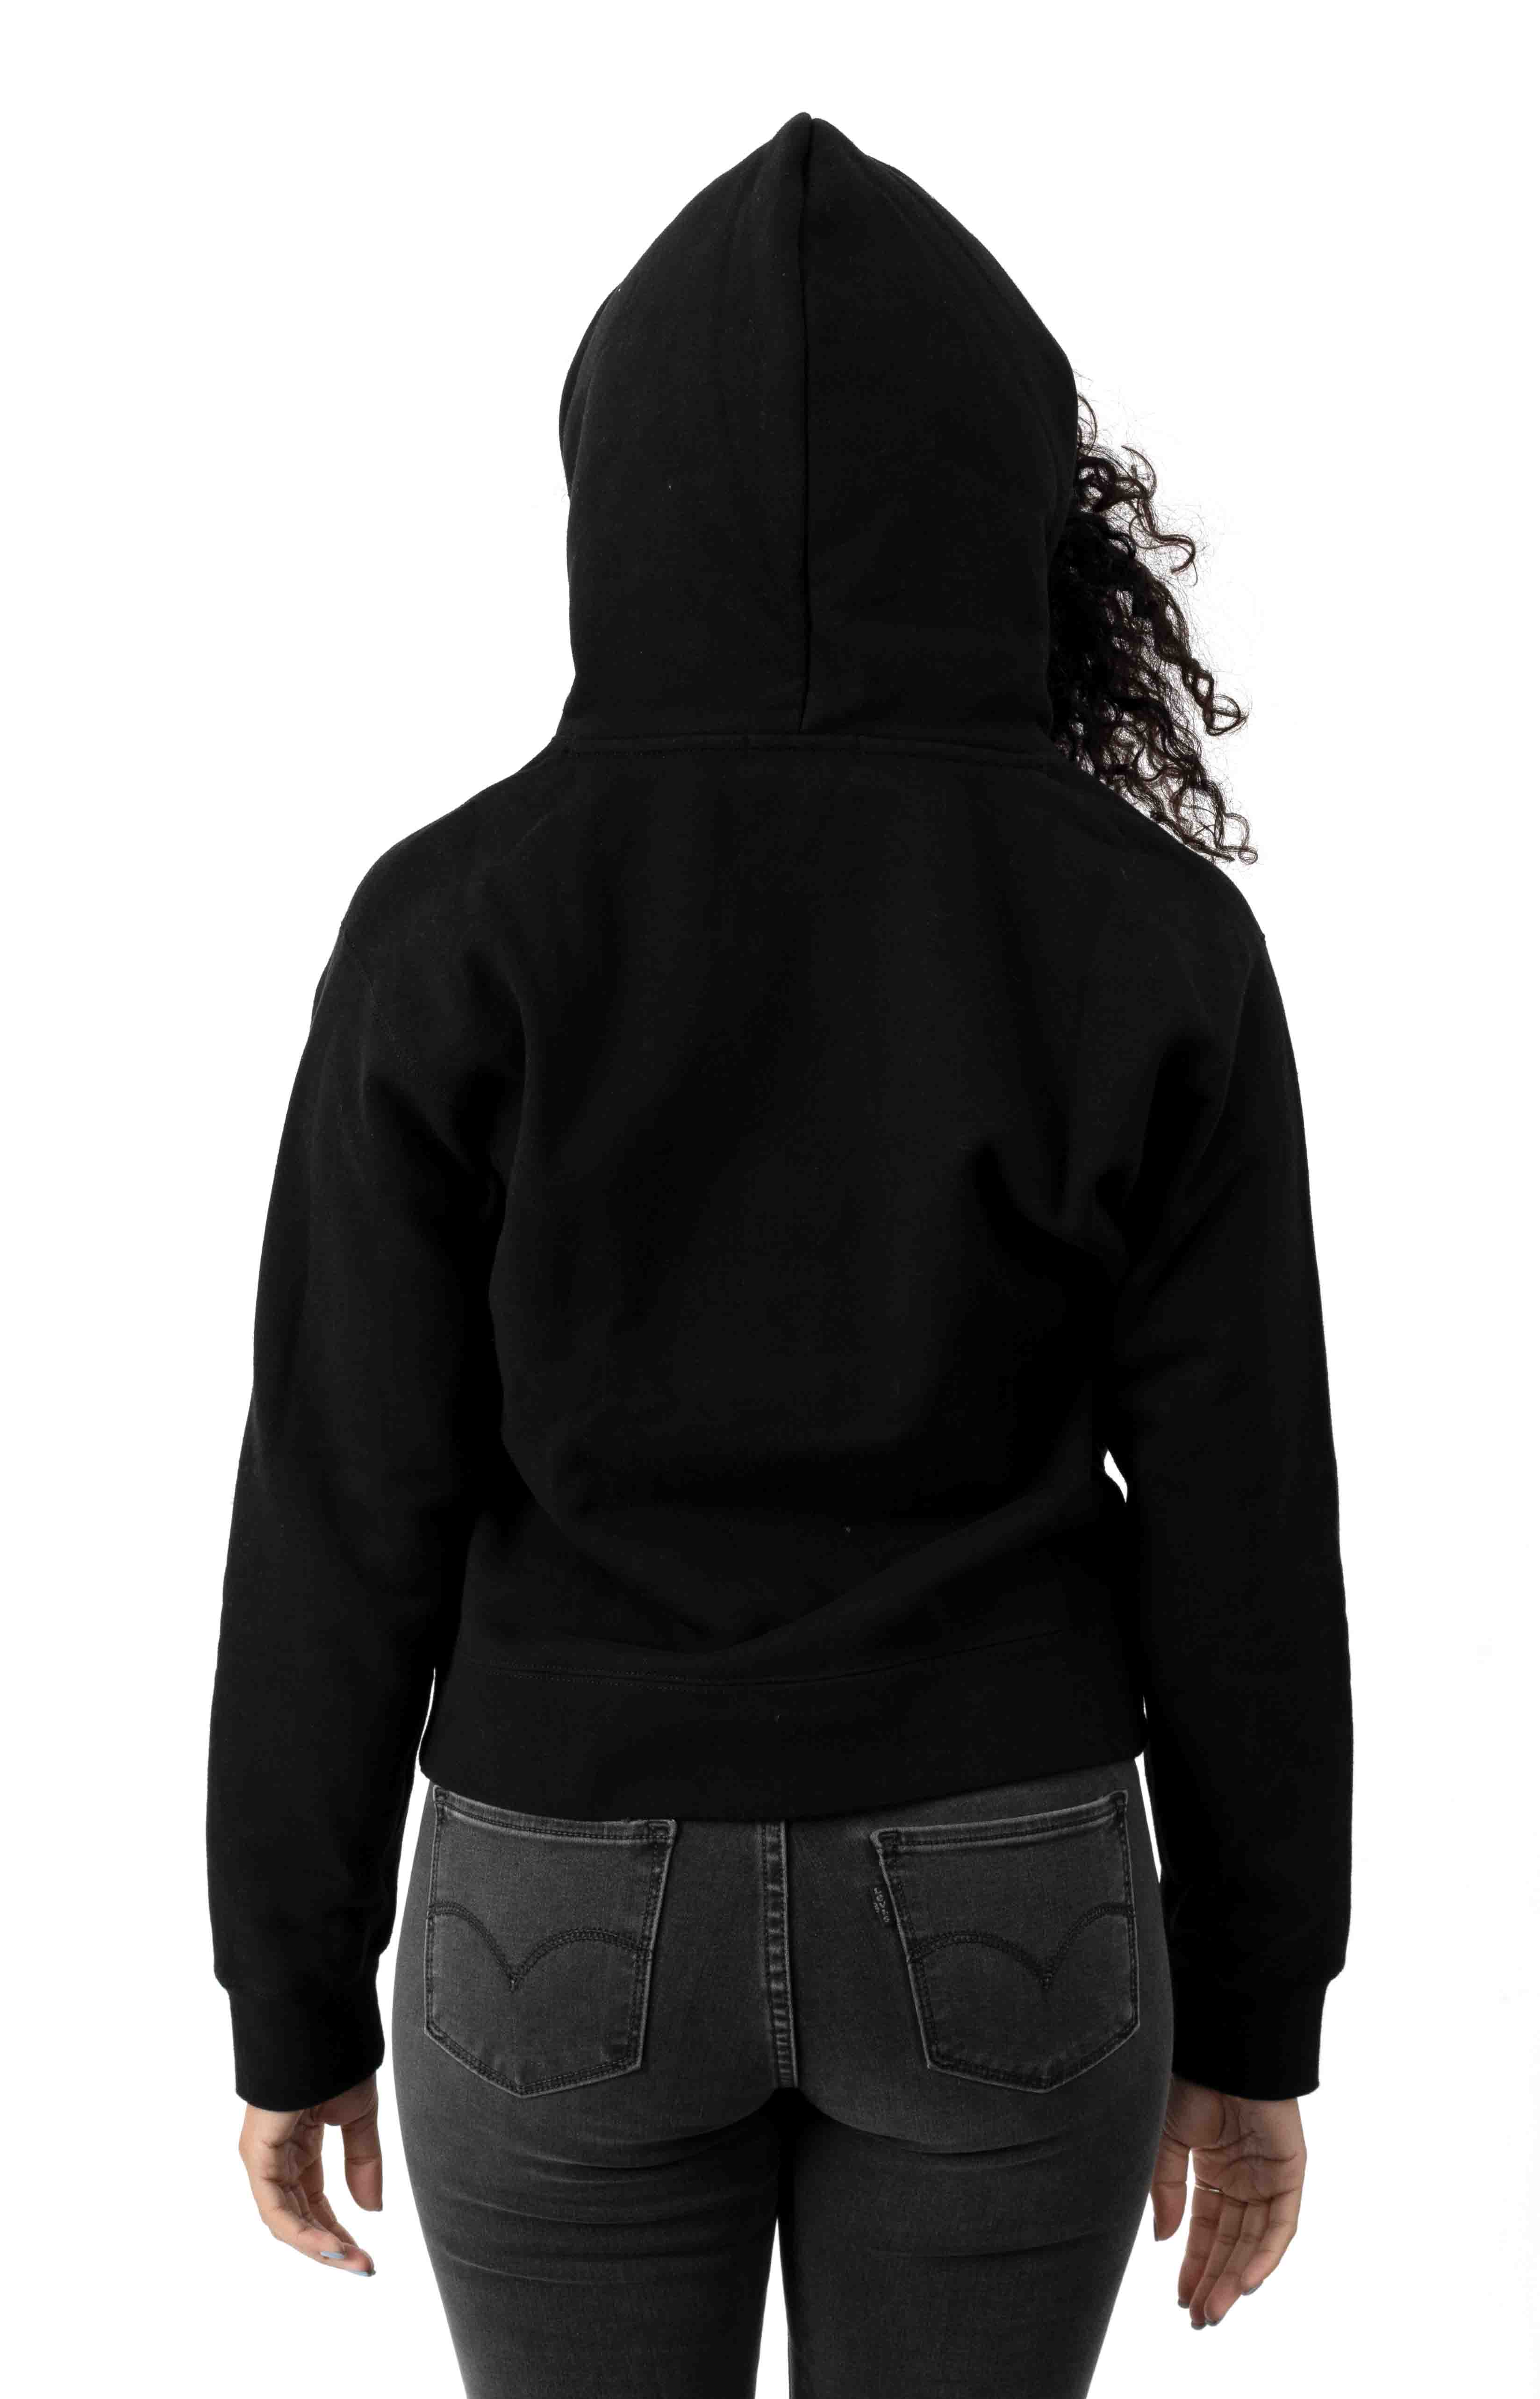 Starface Pullover Hoodie - Black 3